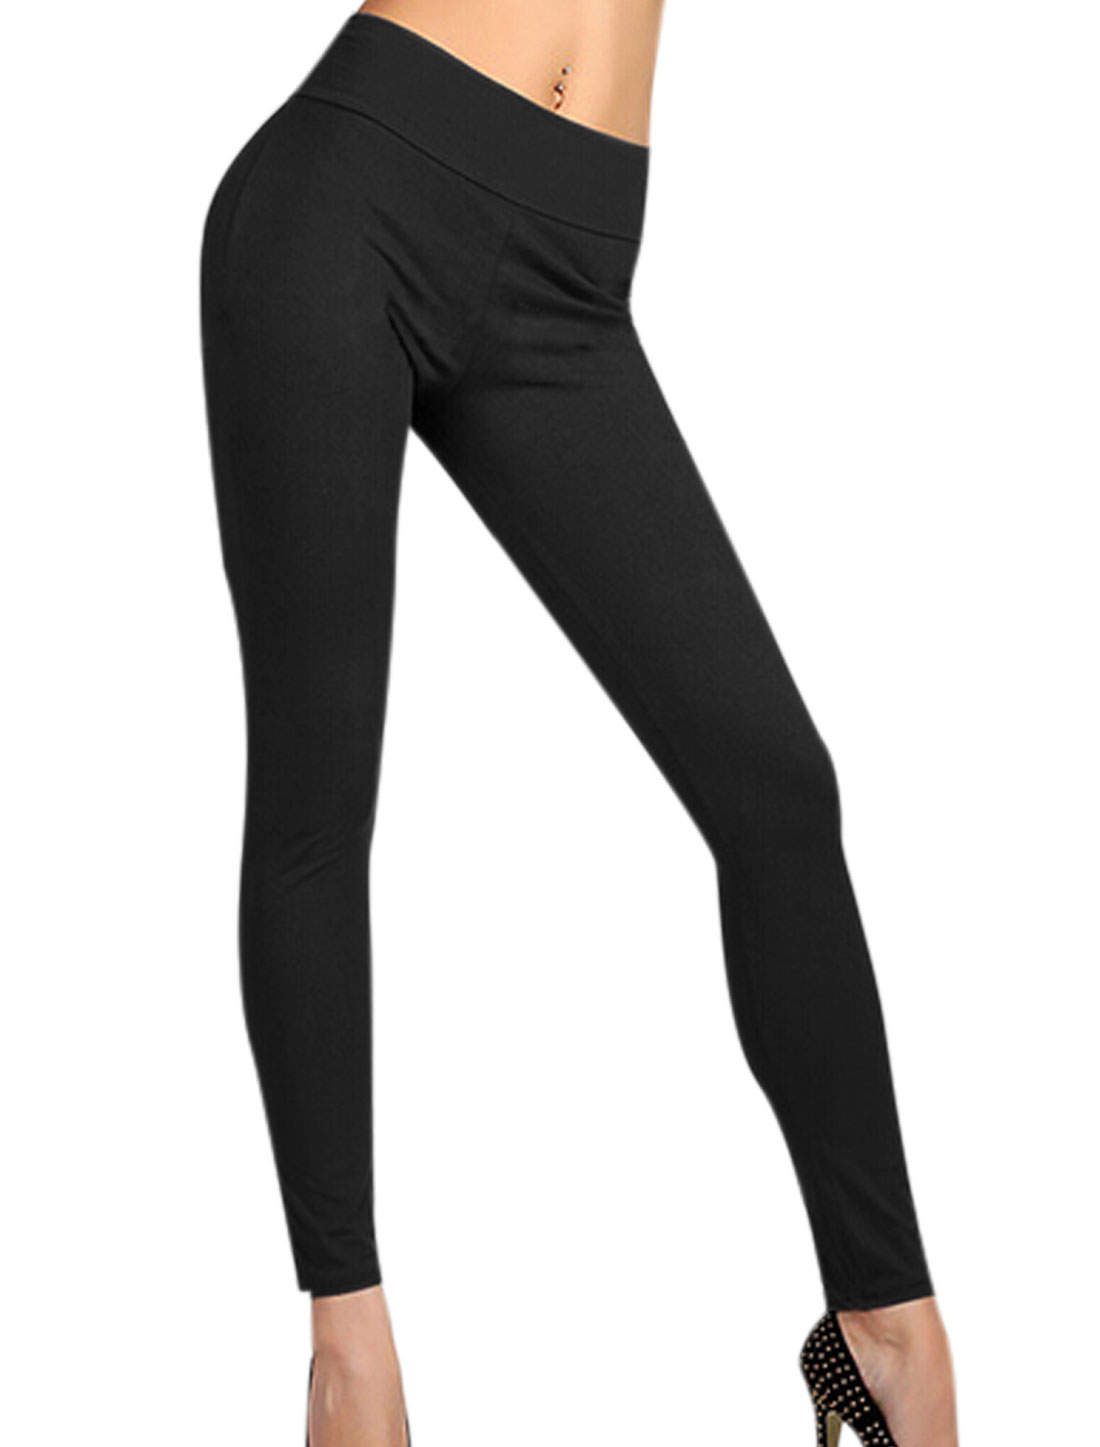 Women Mid Rise Elastic Waist Fashion Leggings Black XL